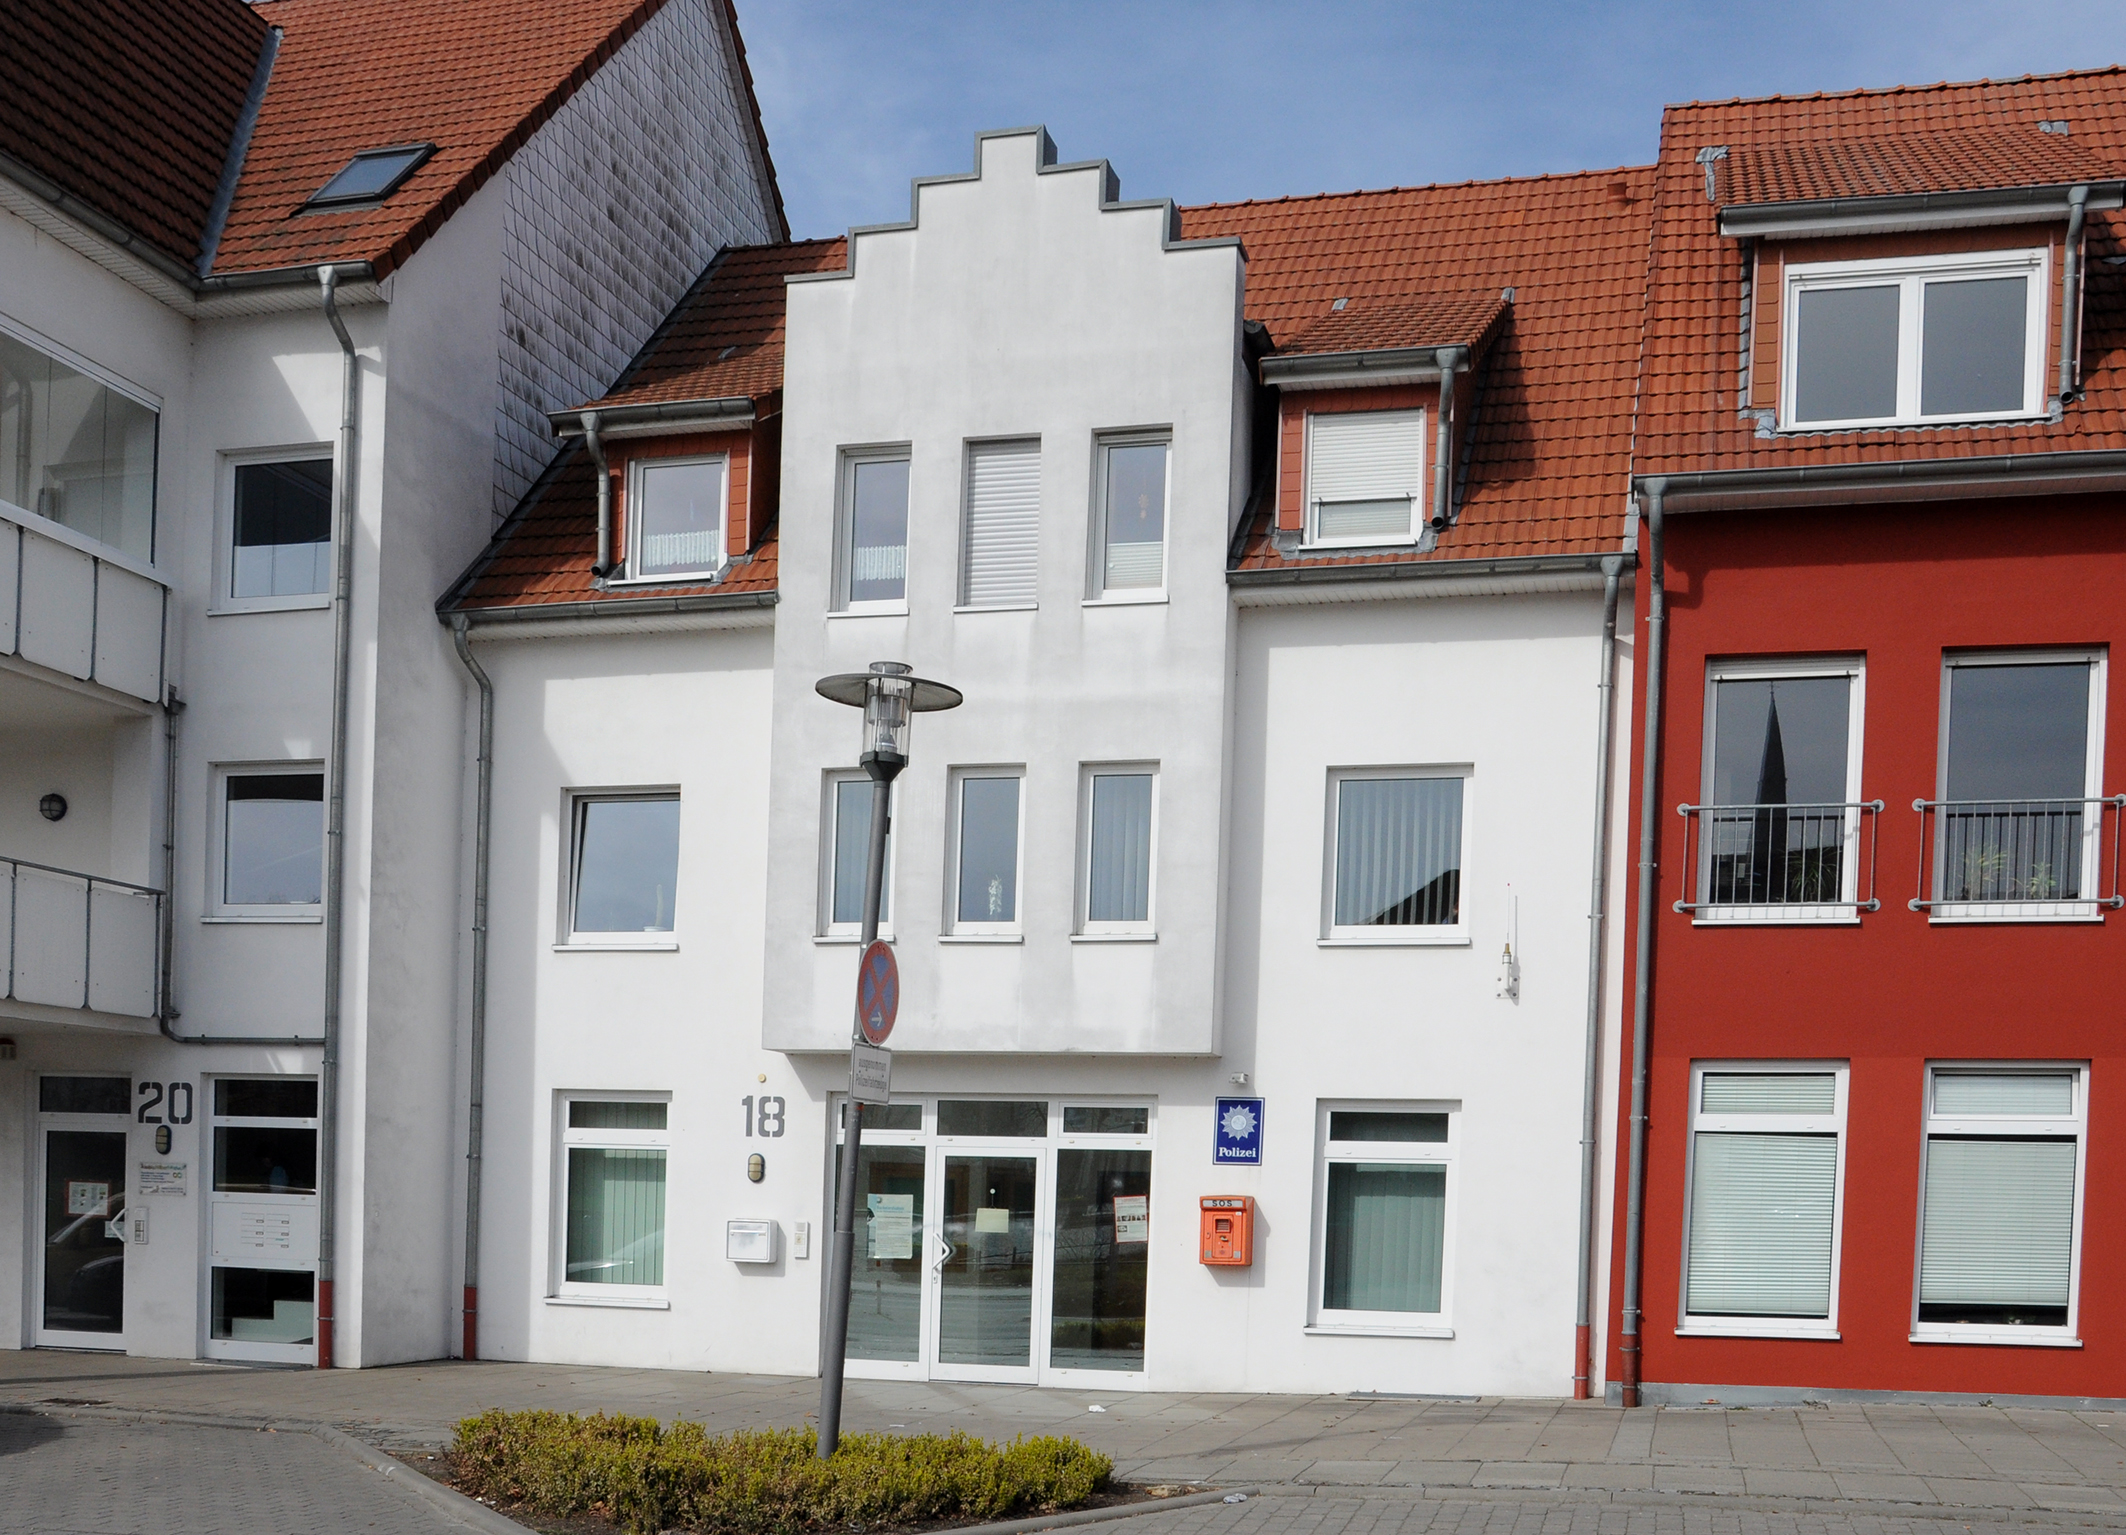 Polizeistation Wallenhorst